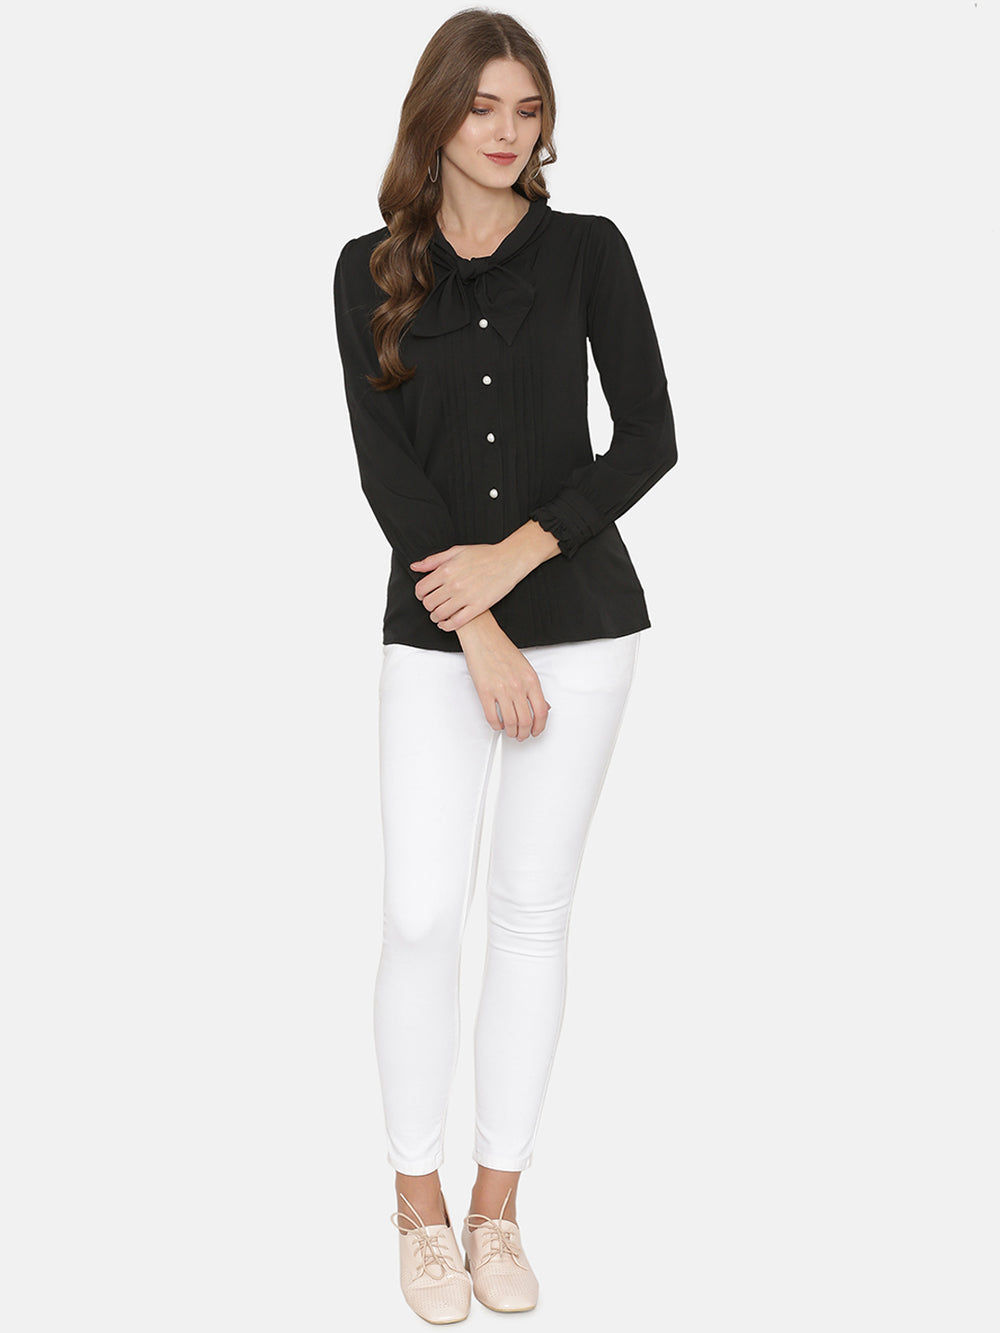 eyelet Women Black Comfort Slim Fit Solid Casual Shirt